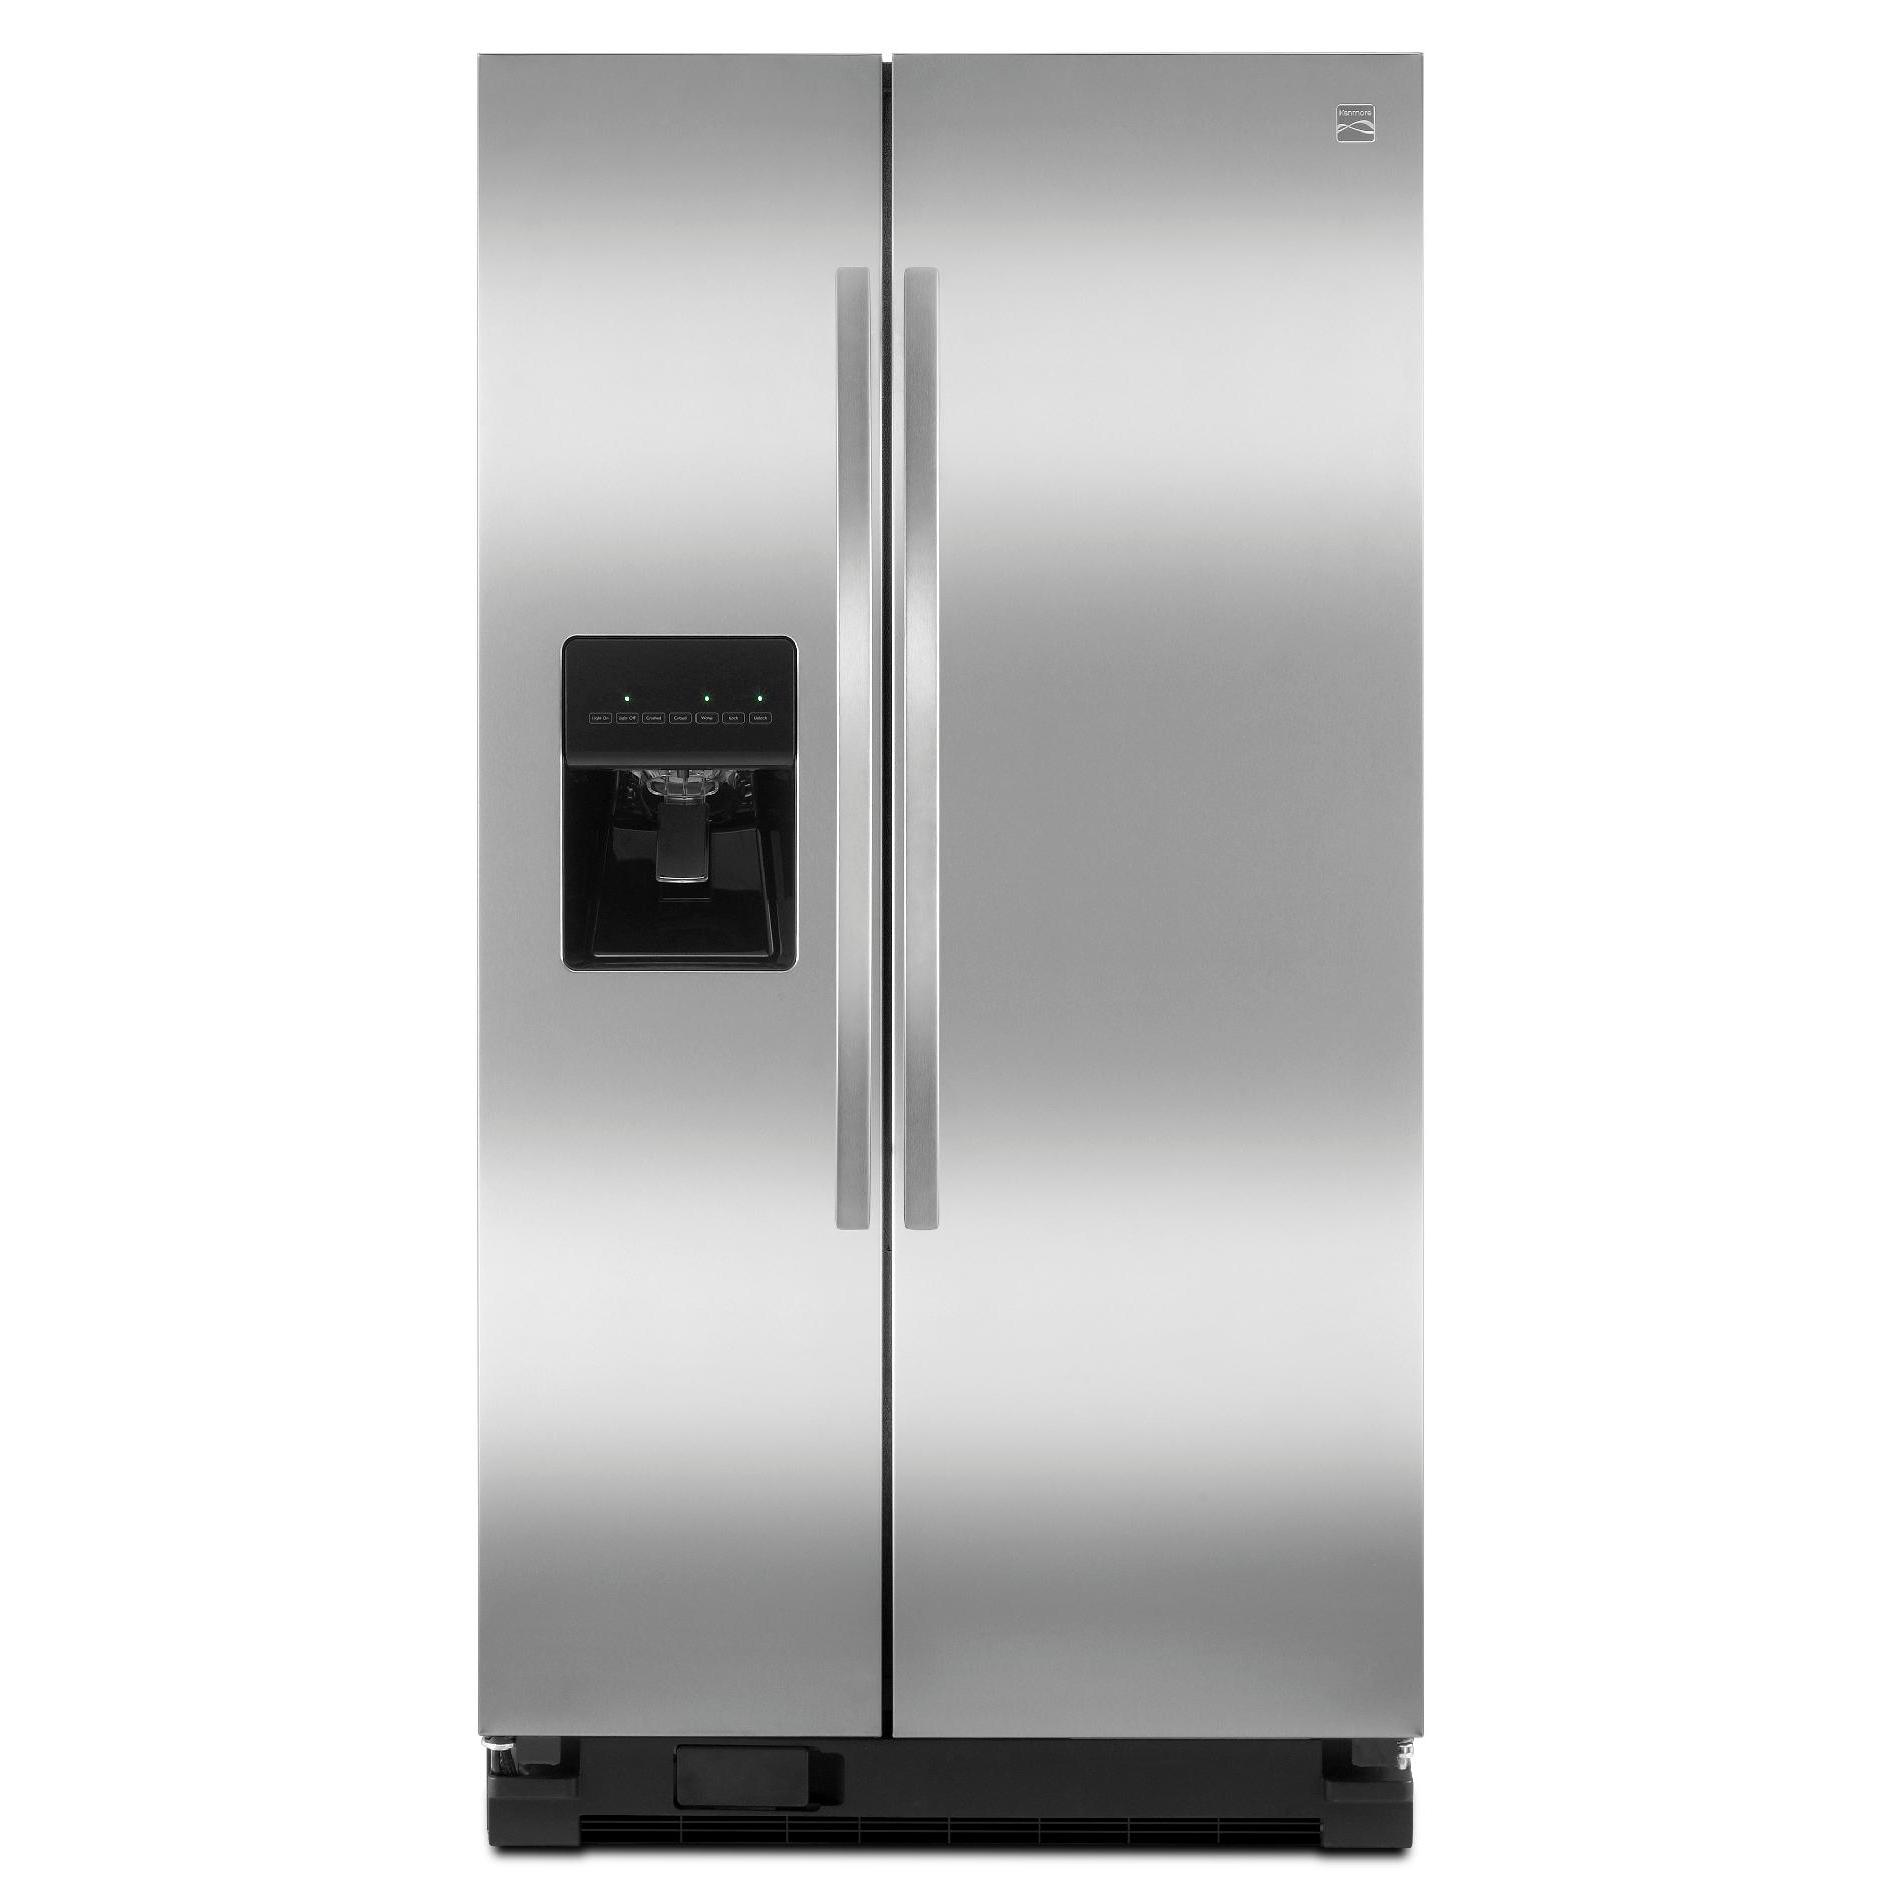 50023-25-cu-ft-Side-by-Side-Refrigerator-Stainless-Steel